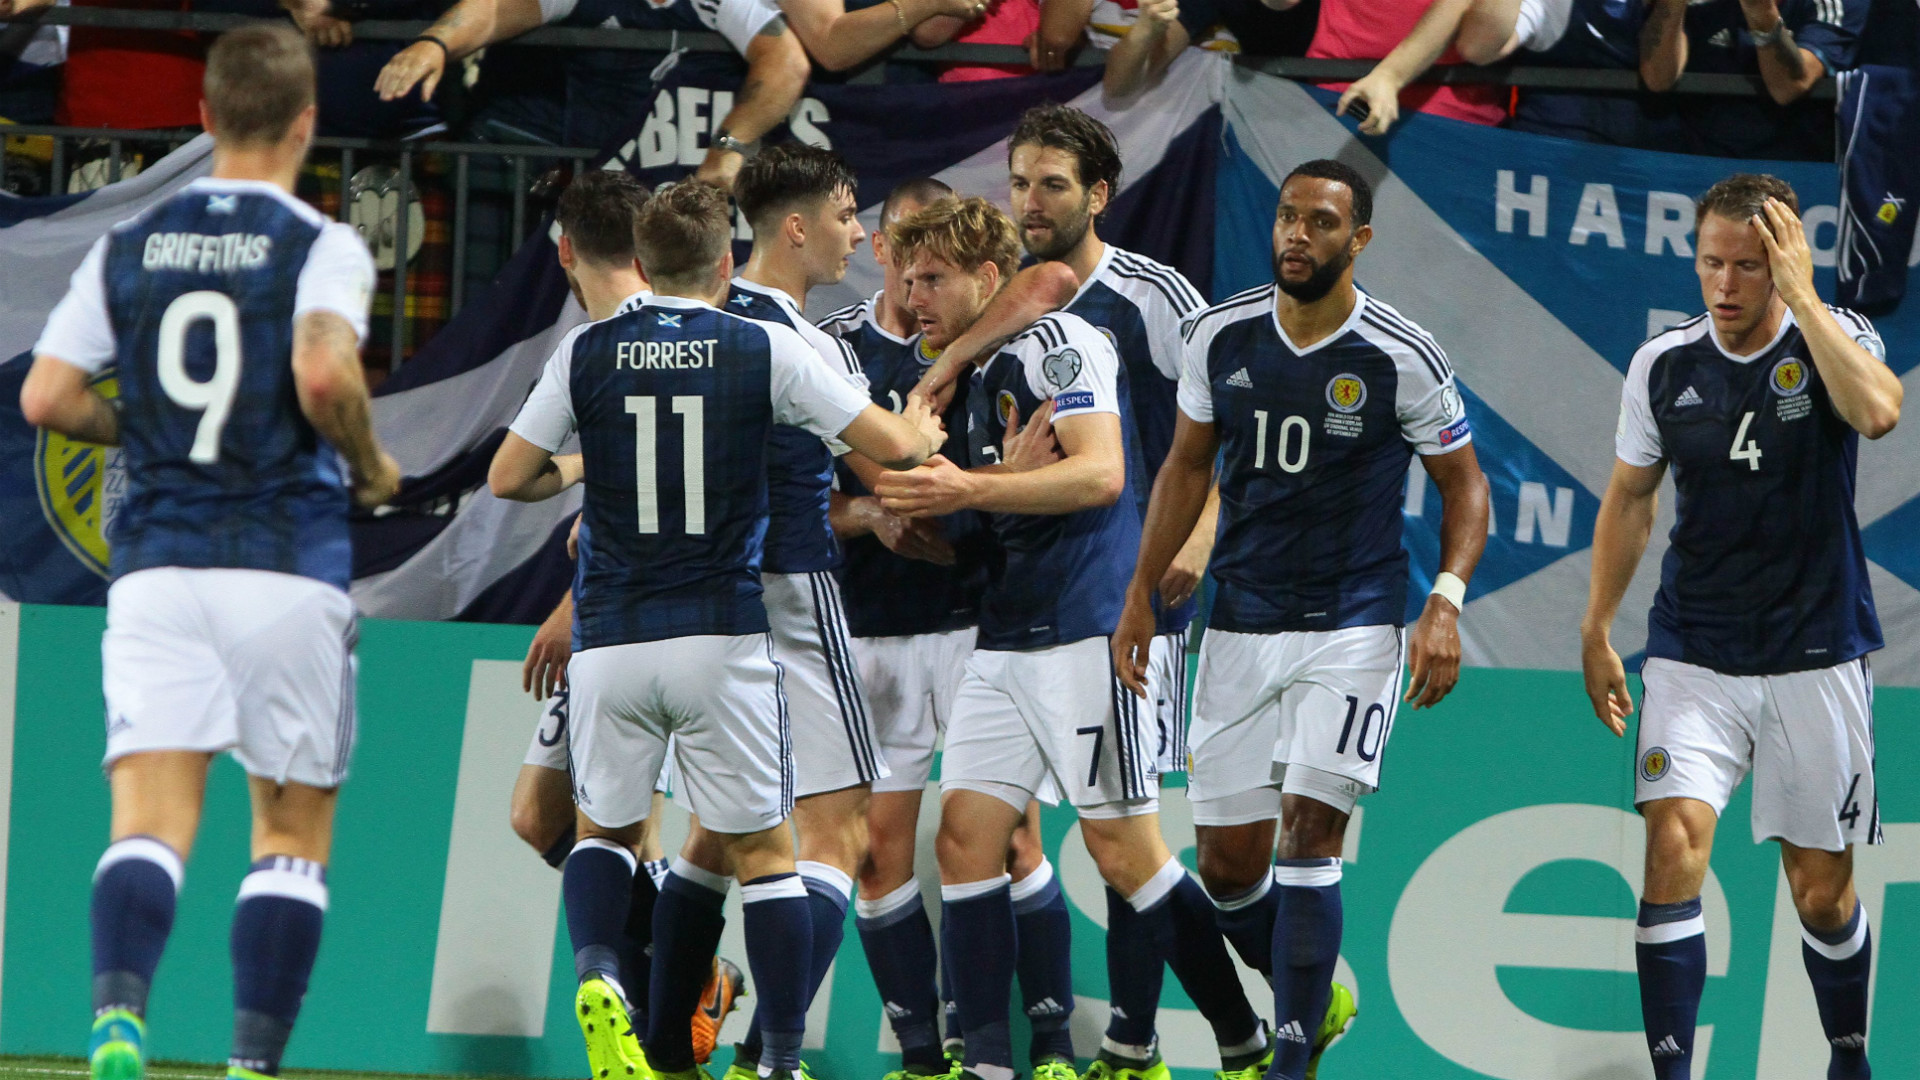 Scotland's Scott Brown accuses Malta defender Steve Borg of spitting in him